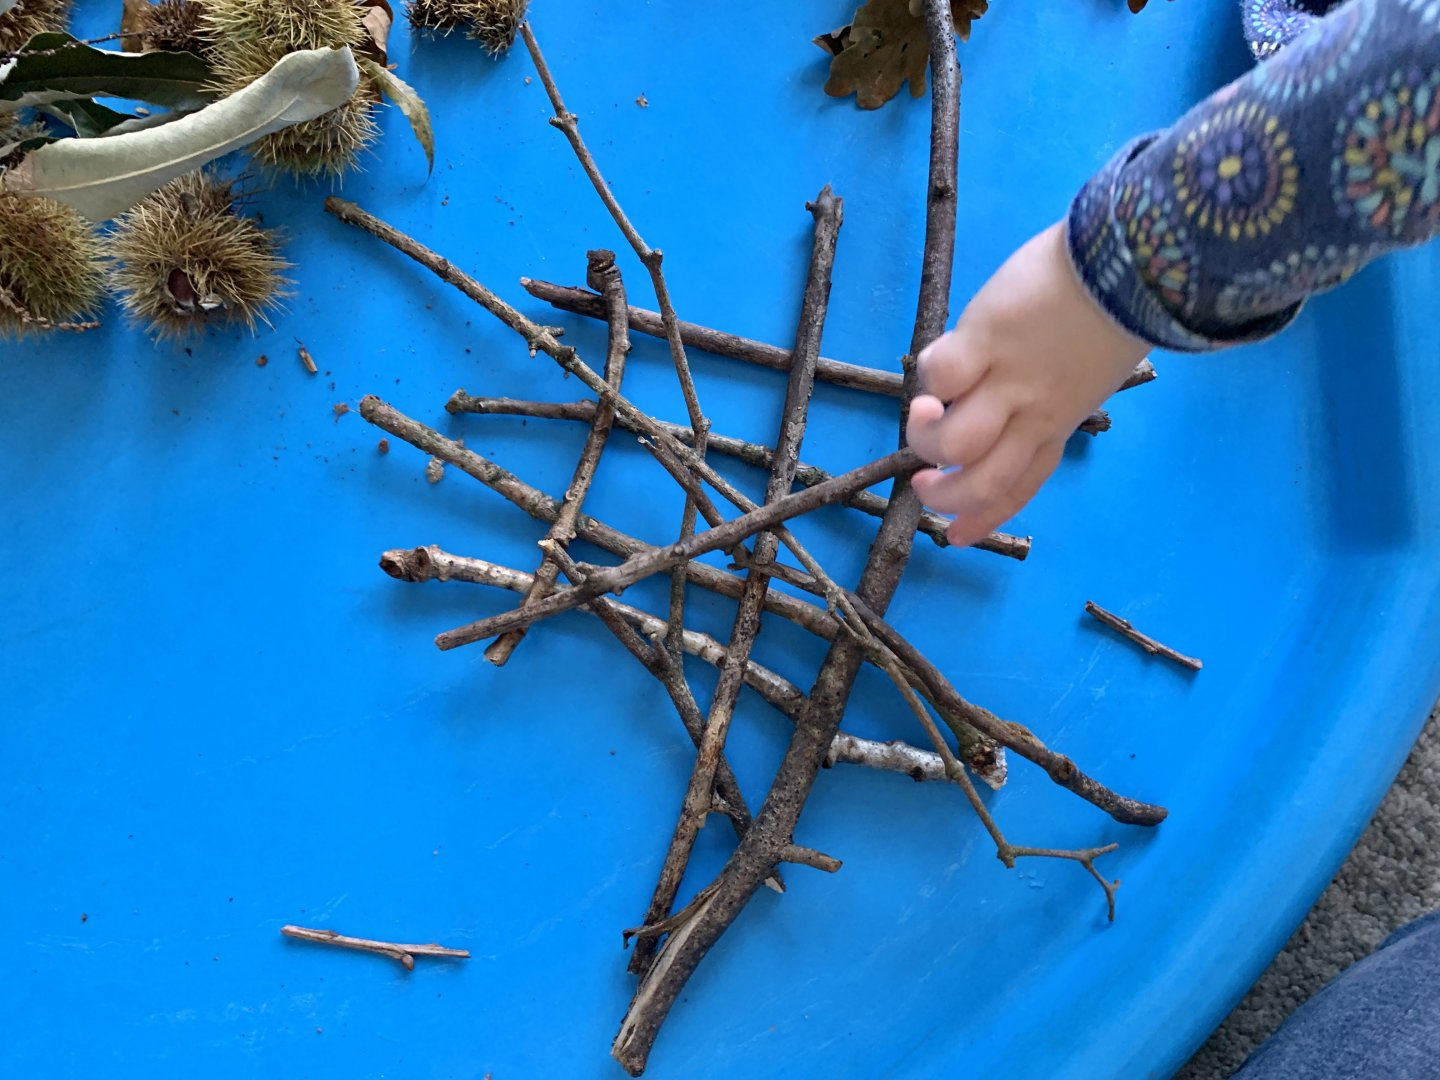 M places a twig on top of a crisscrossed pile of twigs.